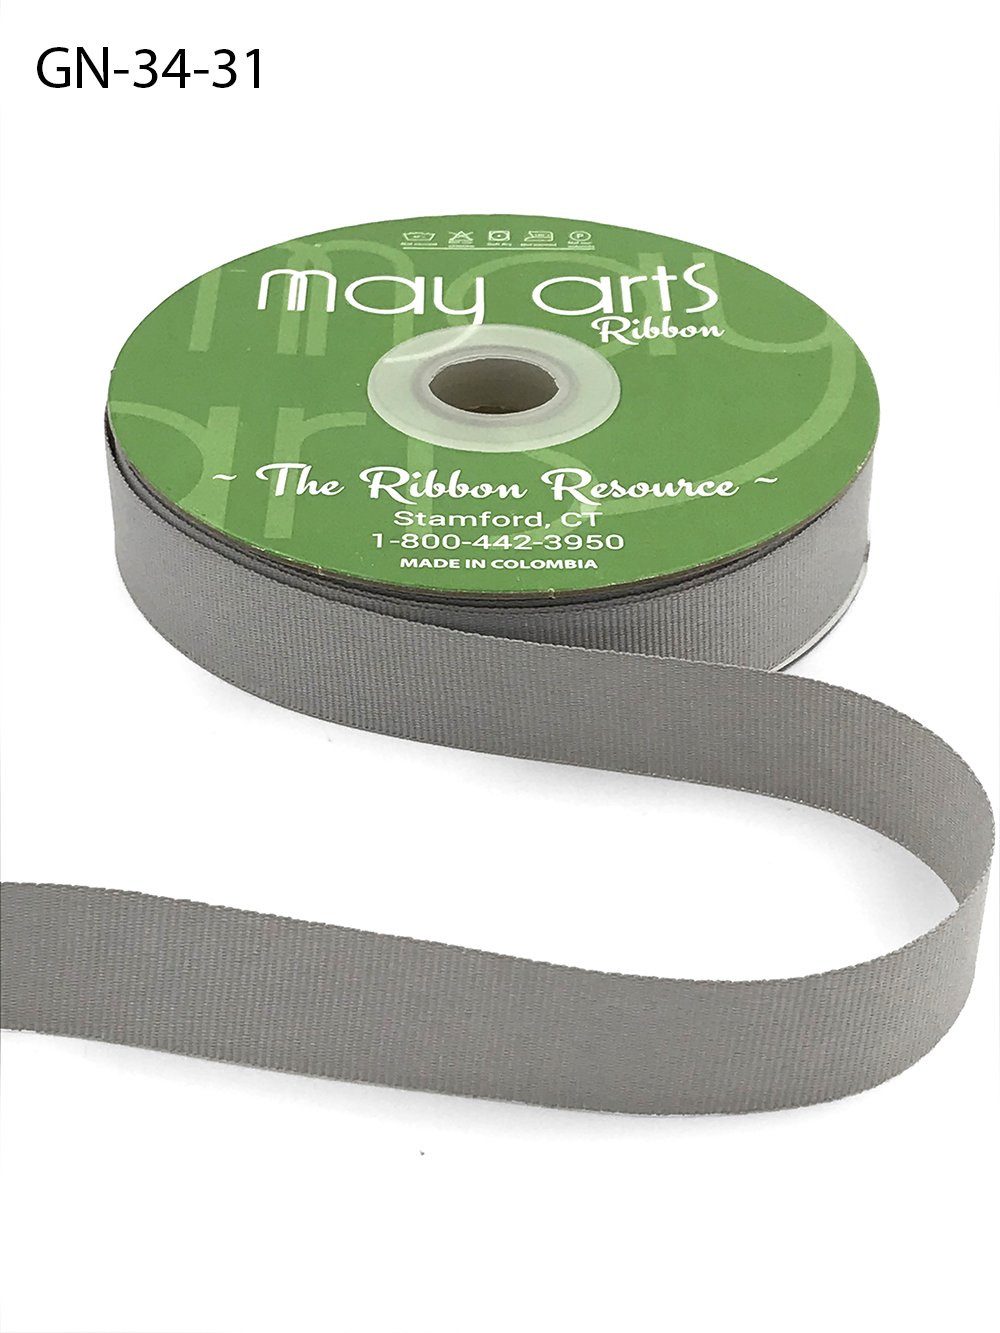 Silver 3/4 Inch Light-Weight Flat Grosgrain Ribbon with Woven Edge